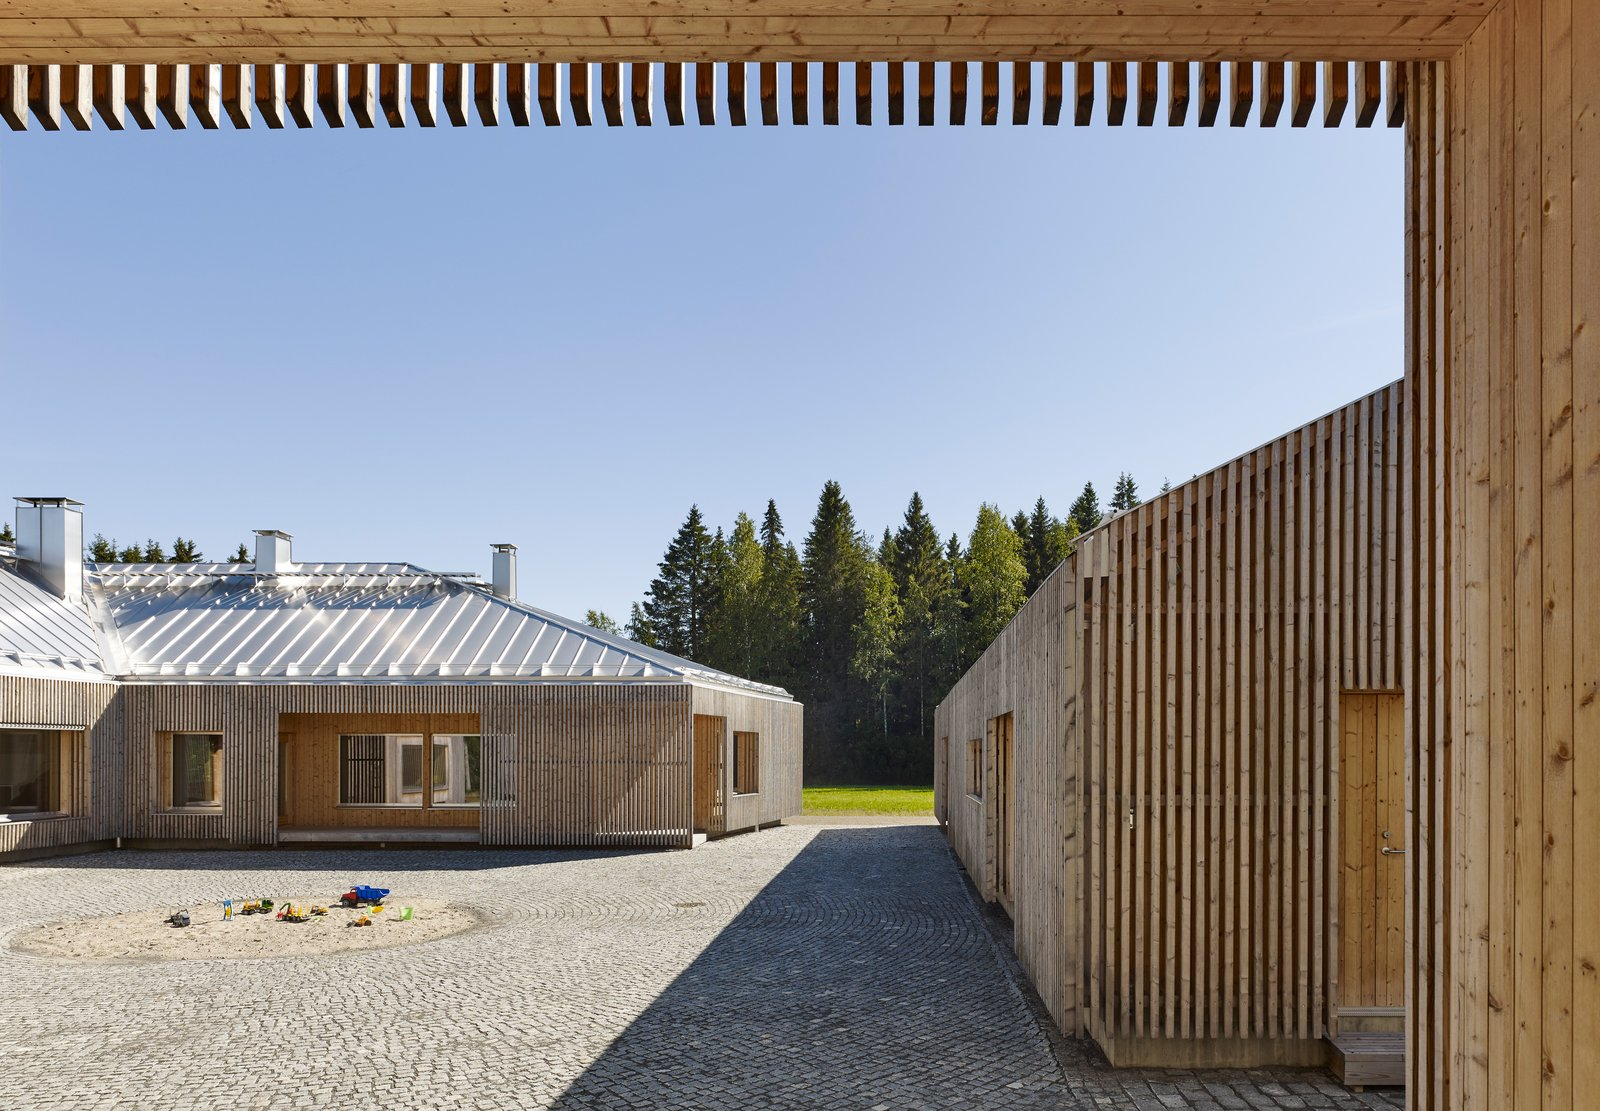 """Architect Anssi Lassila de-signed House Riihi to run on Control Intelligence's Talomat system, which enables the build-ings to be powered by battery. """"Often, we don't know that there has been a power outage,"""" says resident Petri Mäkelä, """"since the lights haven't even flickered."""" By designing the automation system and the house simultaneously, Lassila had maximum control over its integration."""